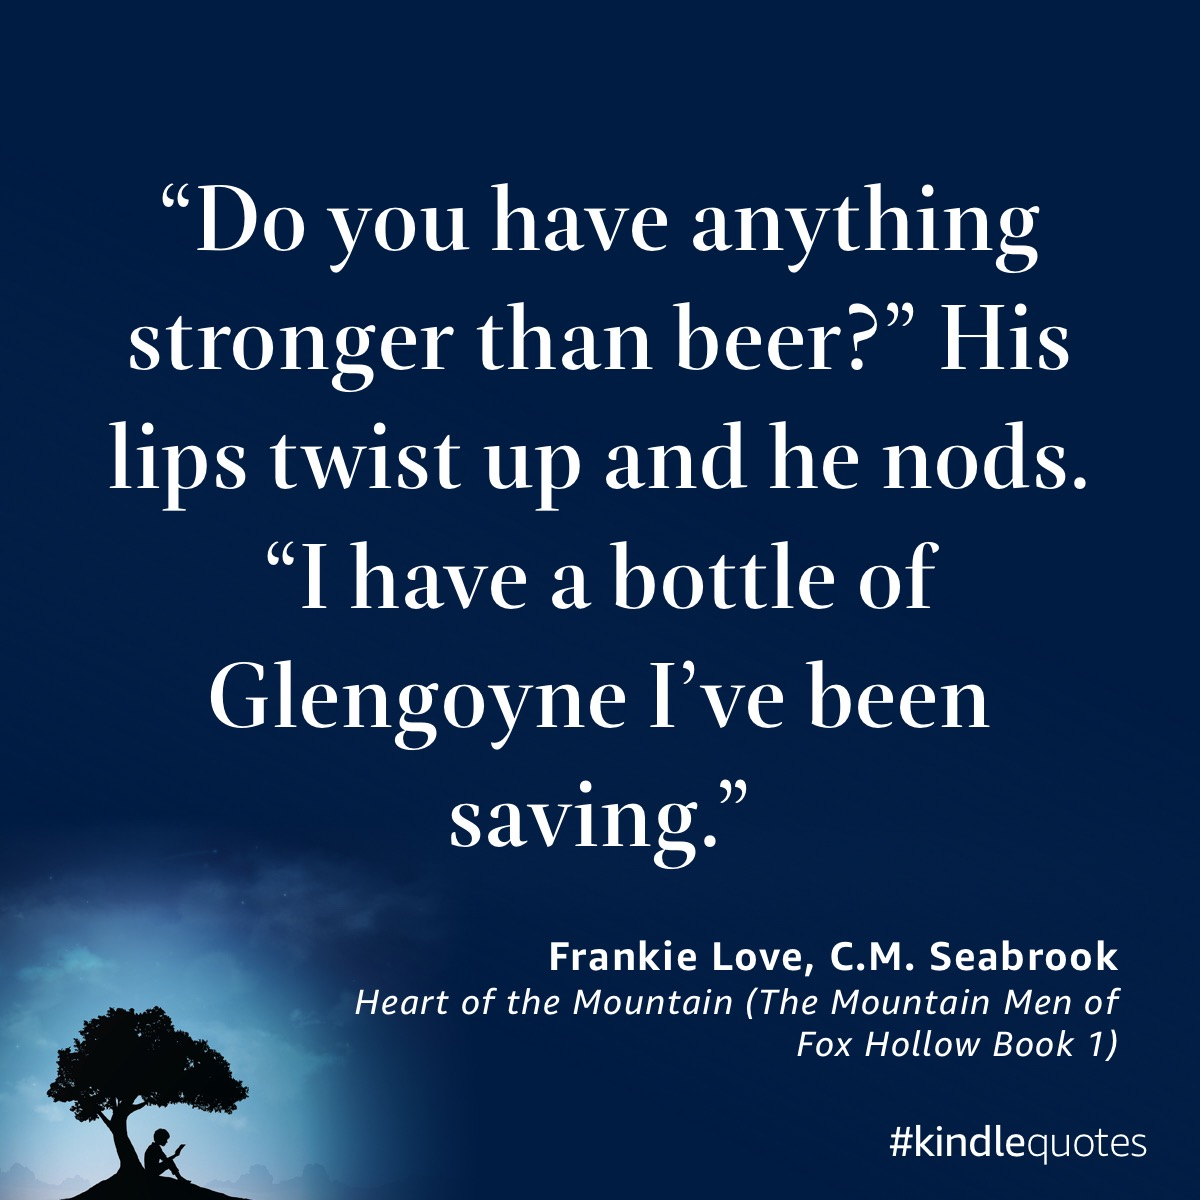 Book quote Frankie Love